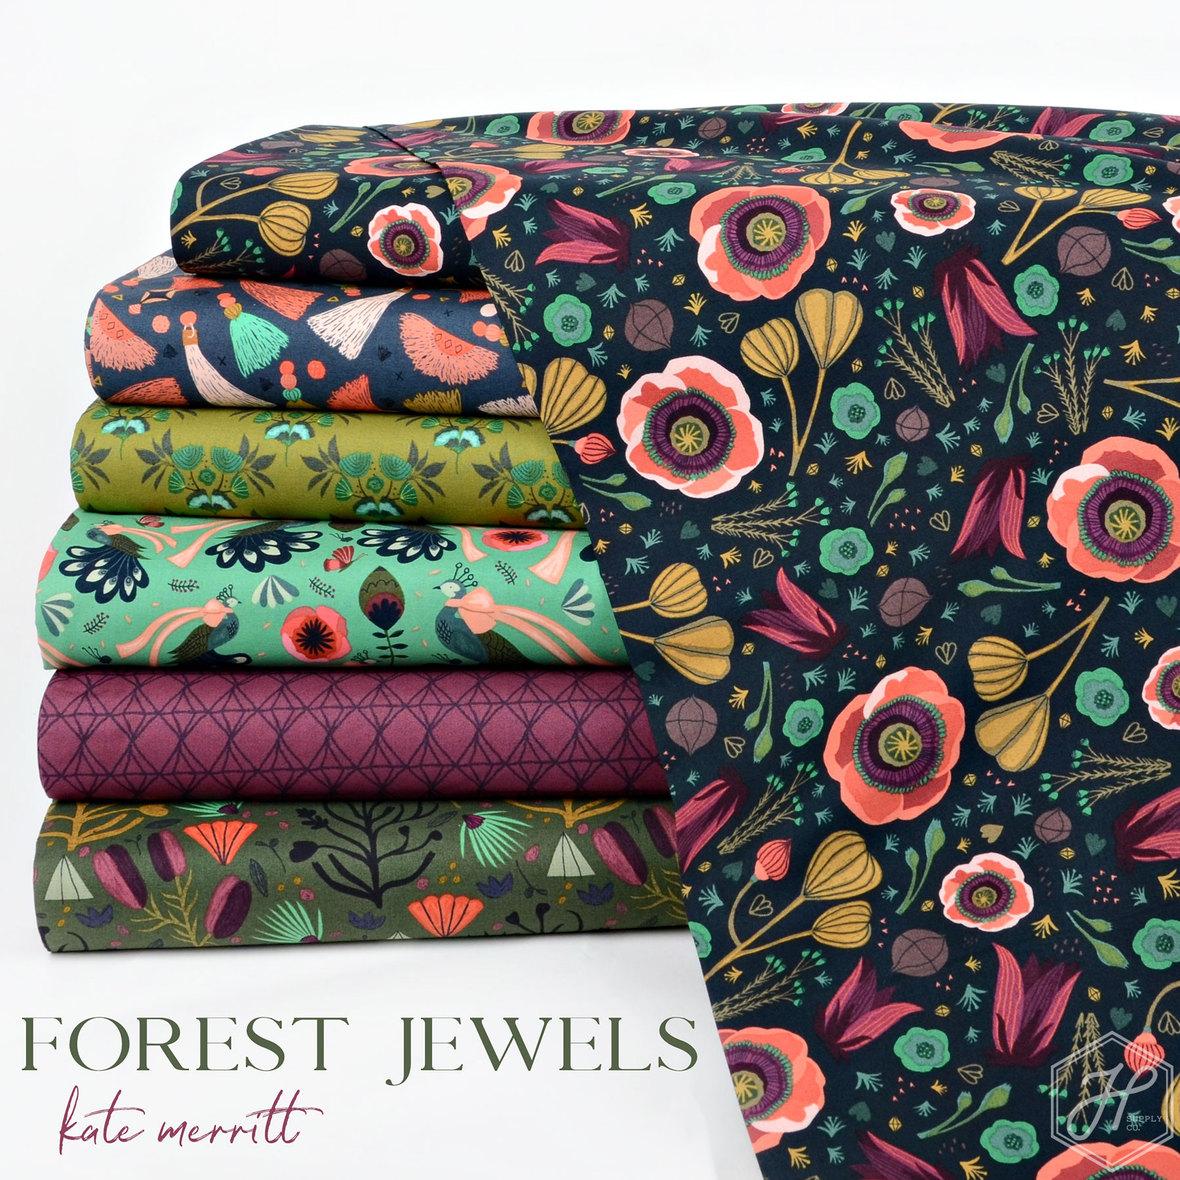 Forest-Jewels-Fabric-Kate-Merritt-and-Cloud-9-at-Hawthorne-Supply-Co